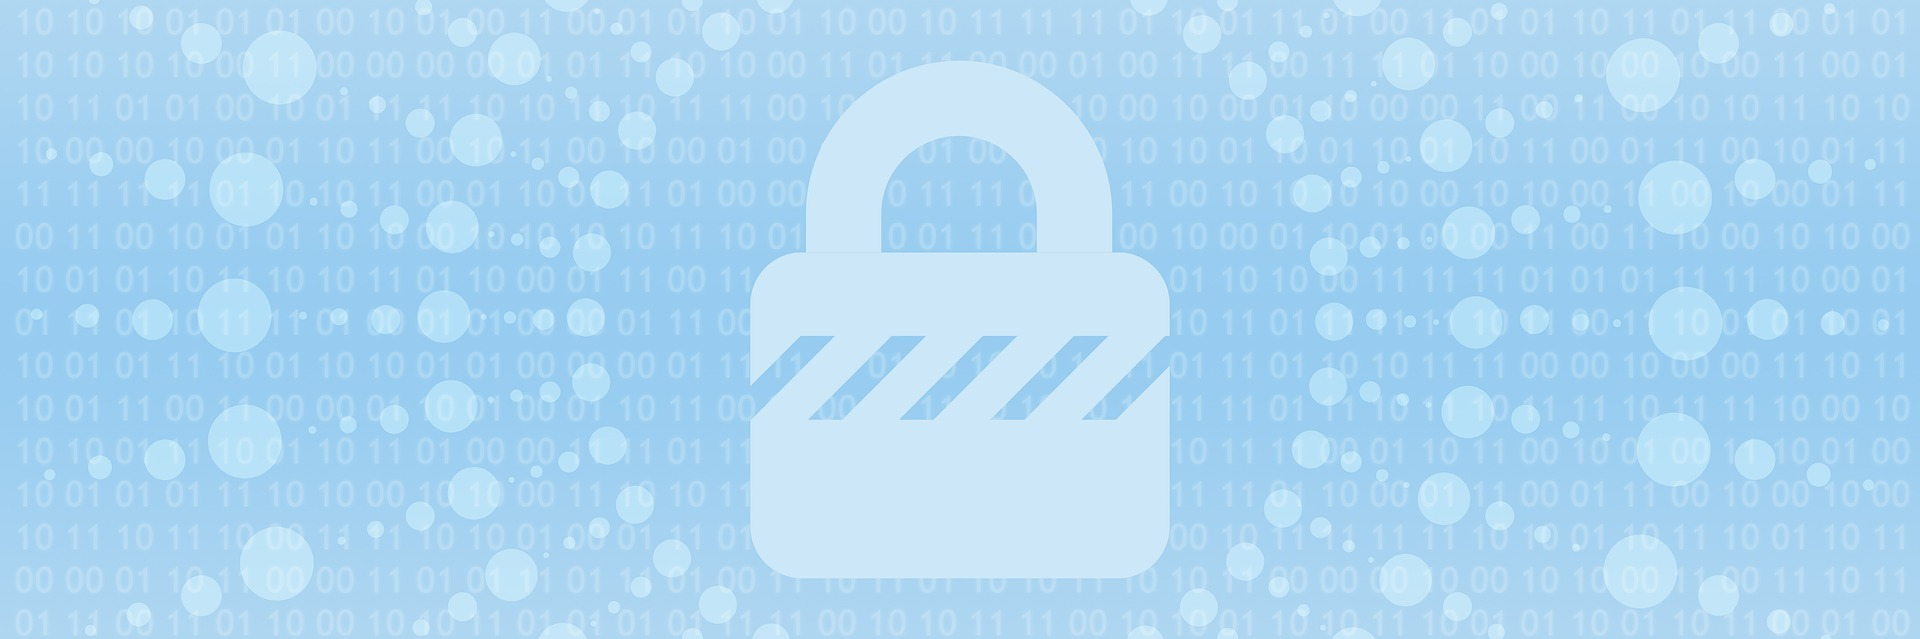 cybersecurity-5285943_1920